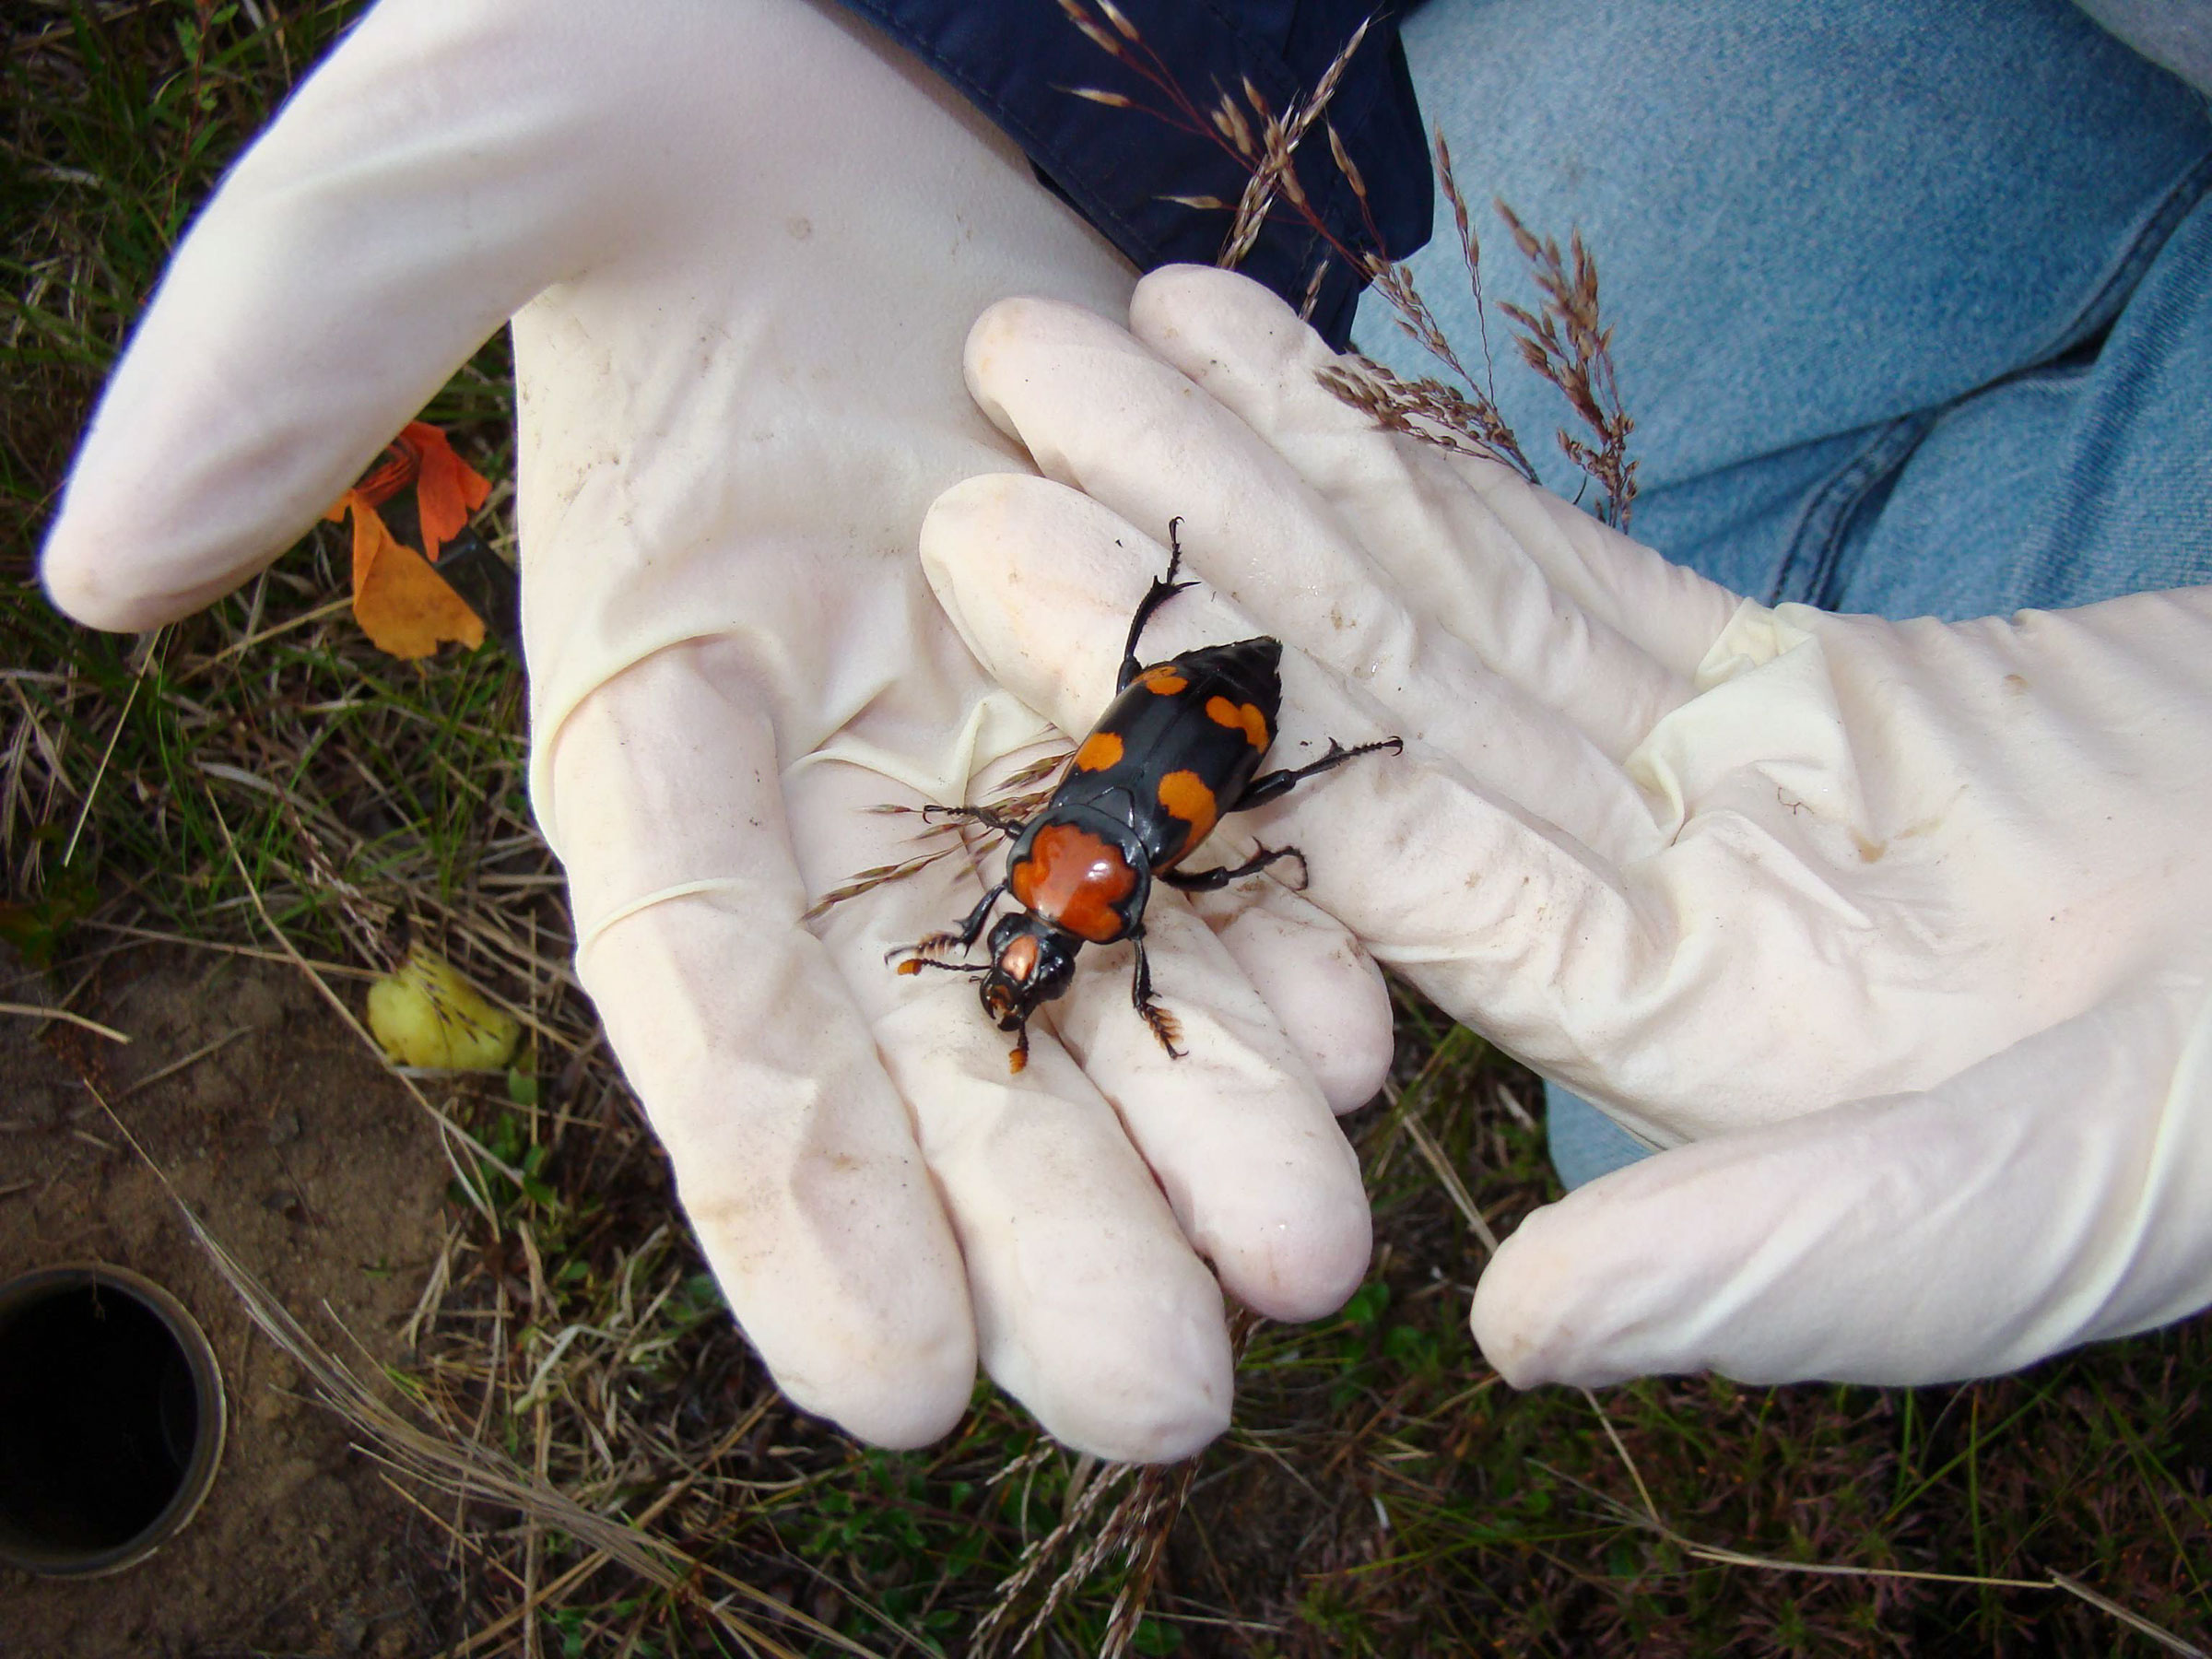 With the reintroduced beetle population doing well, scientists stopped providing bird carcasses to the beetles, hoping they'd find their own. The population plummeted. Courtesy of Roger Williams Park Zoo